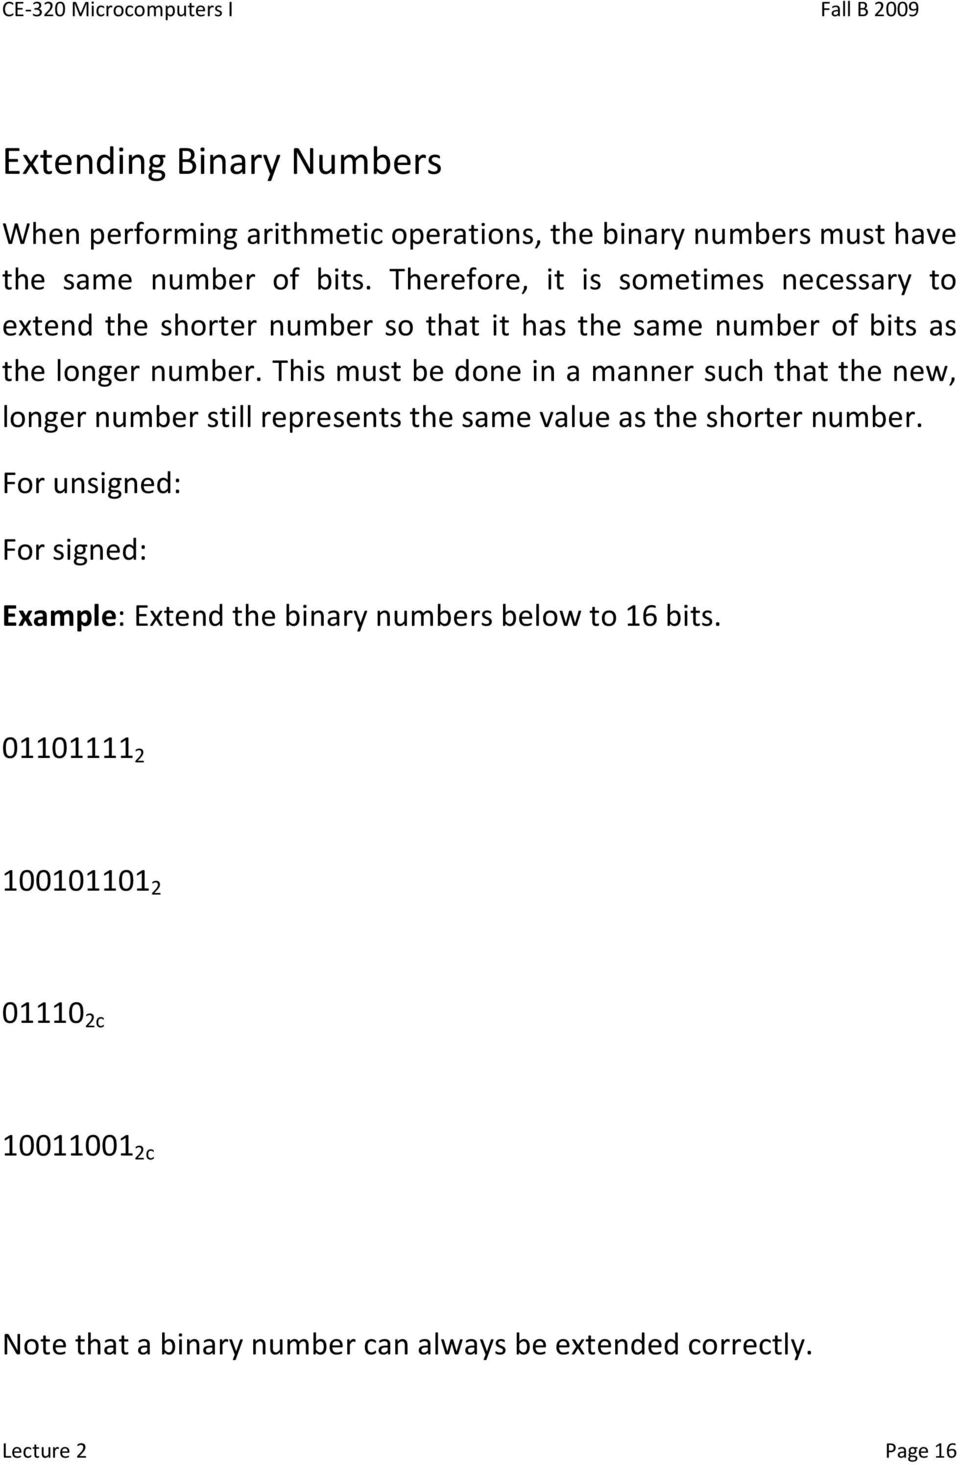 This must be done in a manner such that the new, longer number still represents the same value as the shorter number.